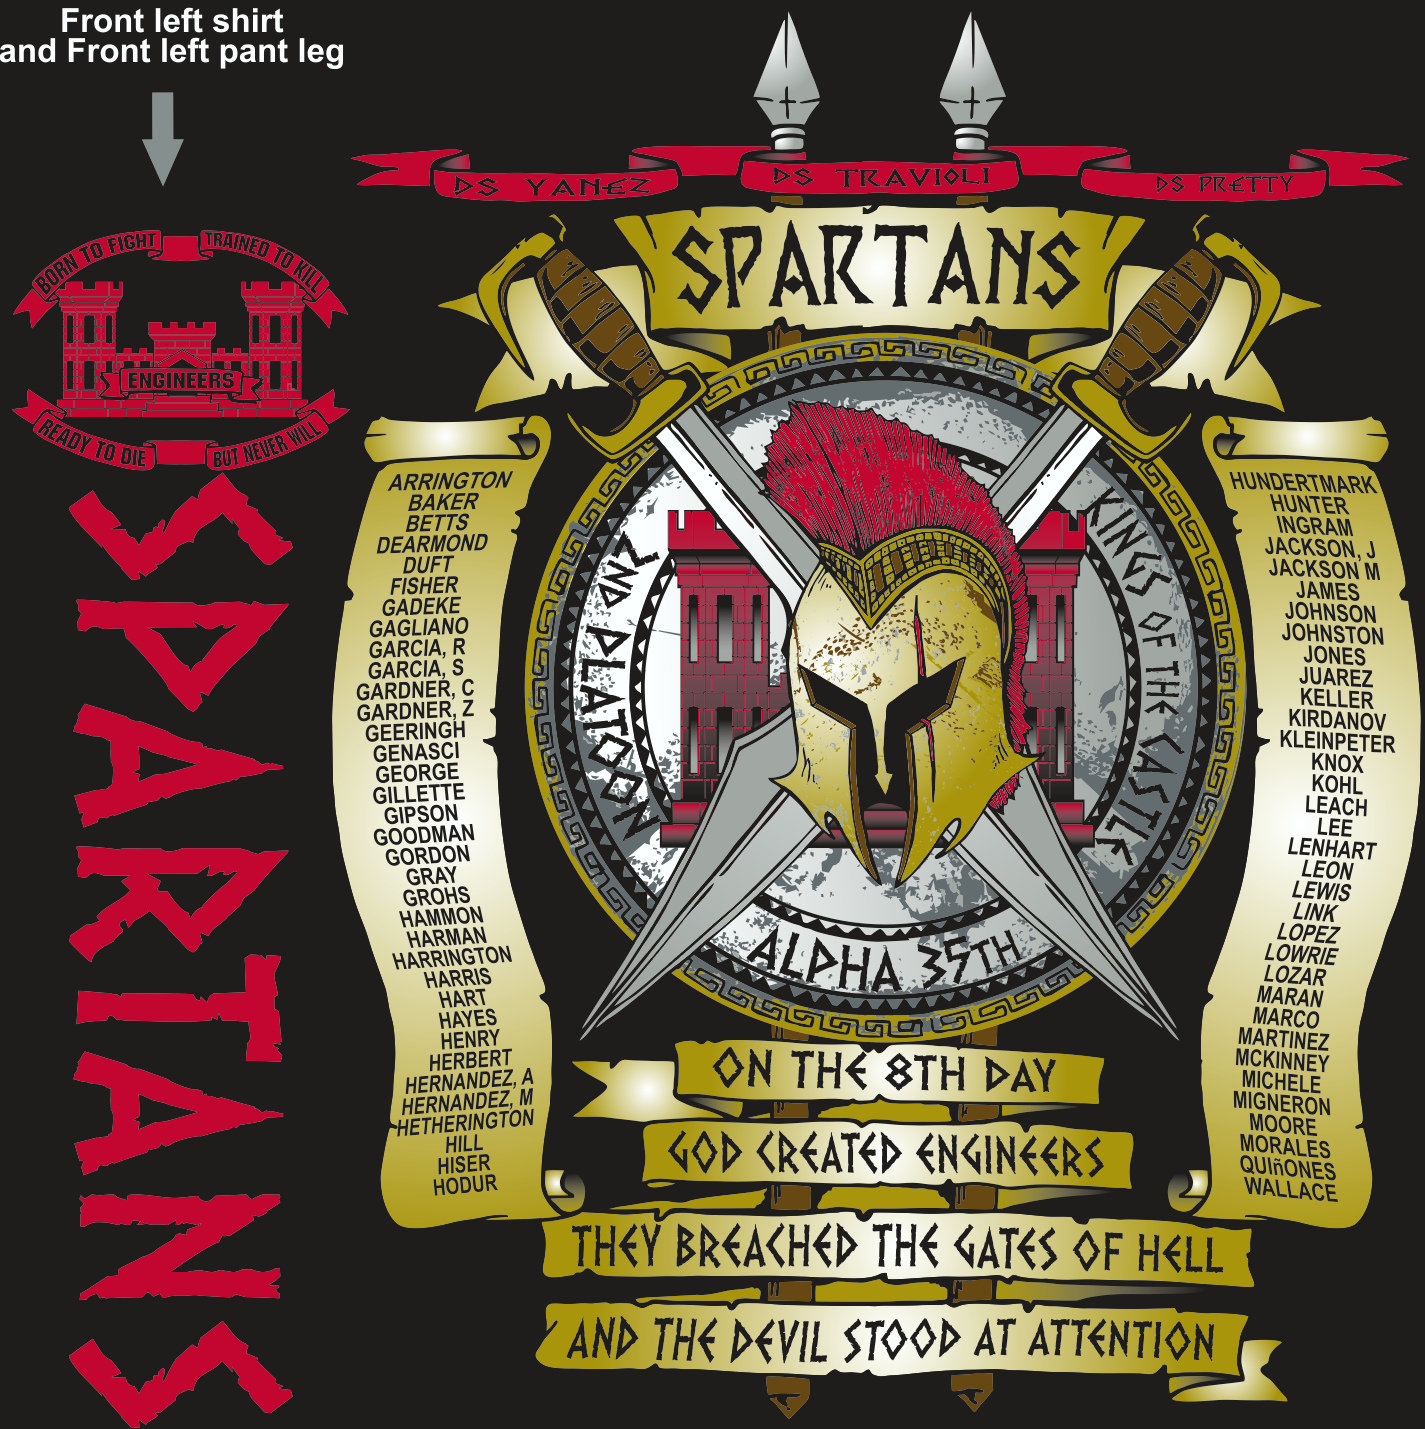 ALPHA 35TH SPARTANS GRADUATING DAY 10-30-2015 digital